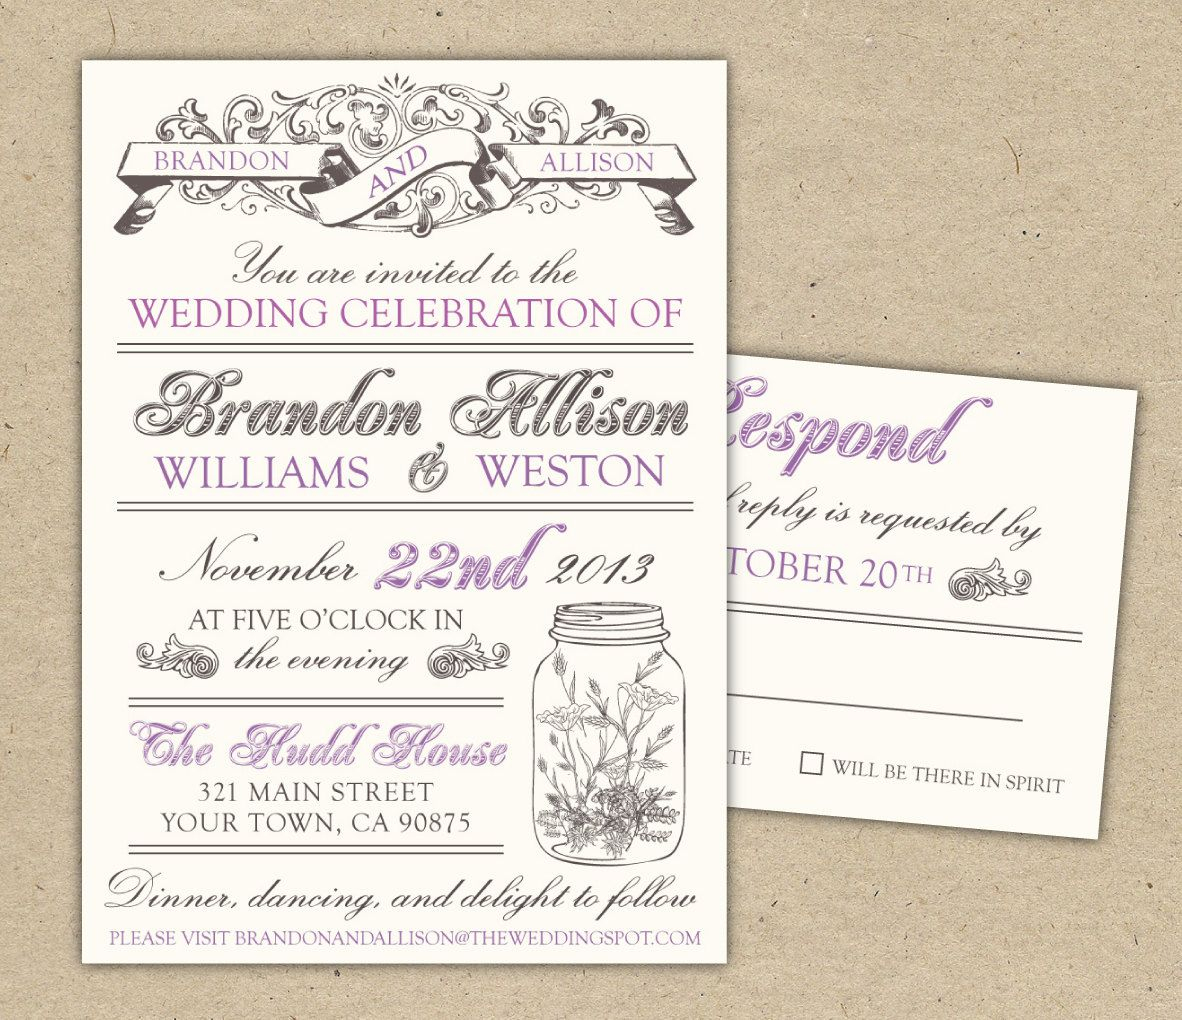 Free Templates For Invitations | Free Printable Vintage Wedding - Free Printable Wedding Invitation Templates For Word